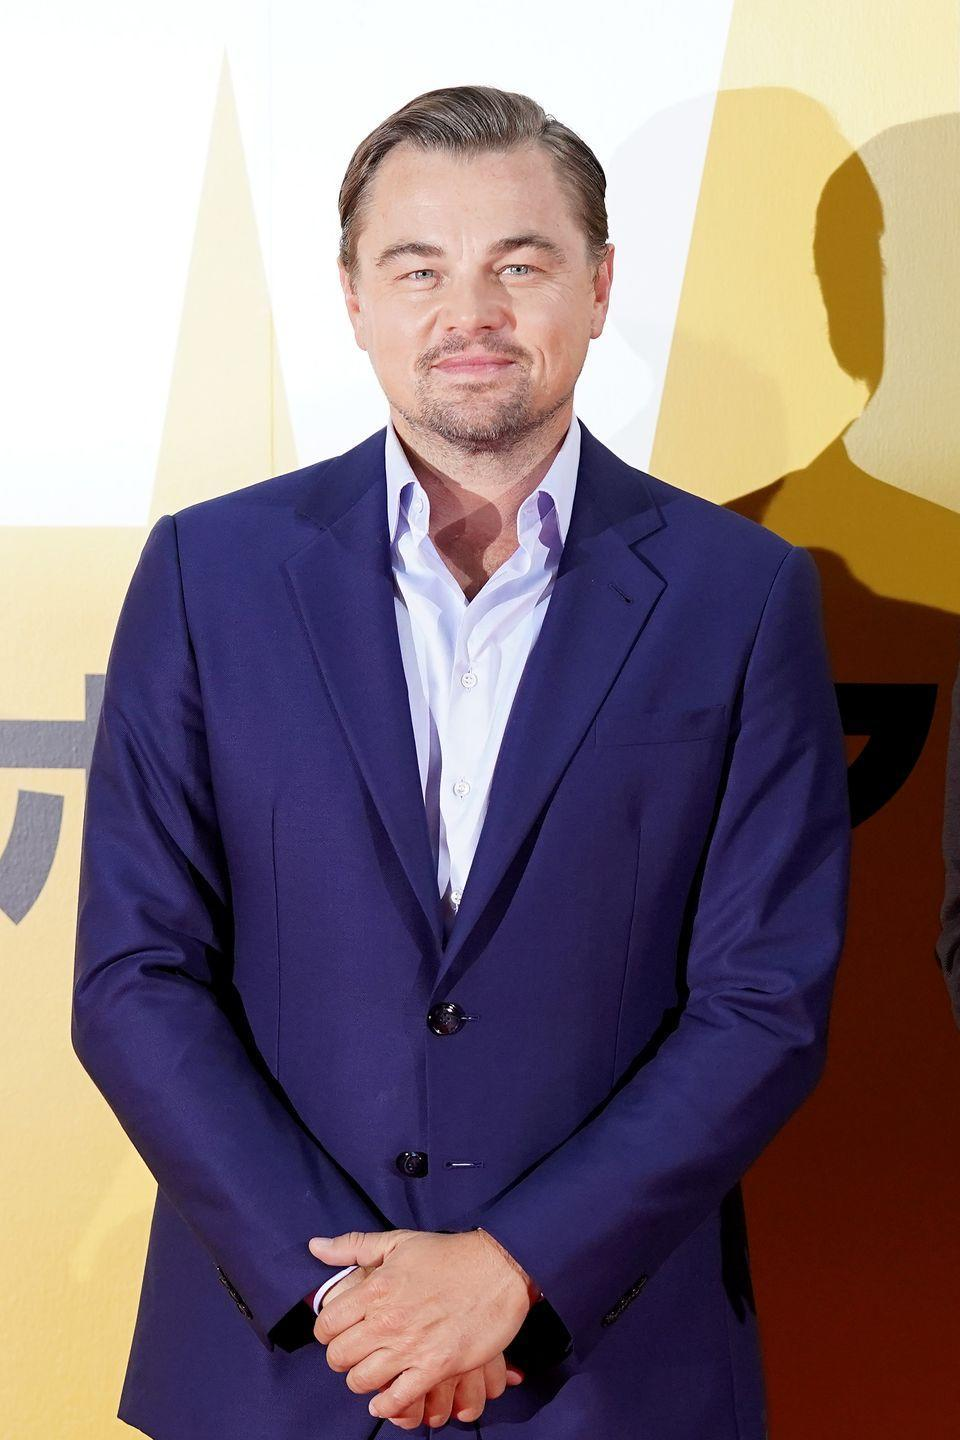 "<p>Now: Almost three decades after his first role, DiCaprio is one of the biggest names in Hollywood—and <a href=""https://variety.com/2019/film/news/celebrity-salaries-leonardo-dicaprio-margot-robbie-dwayne-johnson-will-smith-1203200508/"" rel=""nofollow noopener"" target=""_blank"" data-ylk=""slk:one of the highest paid actors"" class=""link rapid-noclick-resp"">one of the highest paid actors</a> in the industry. He holds an Academy Award and three Golden Globes.</p>"